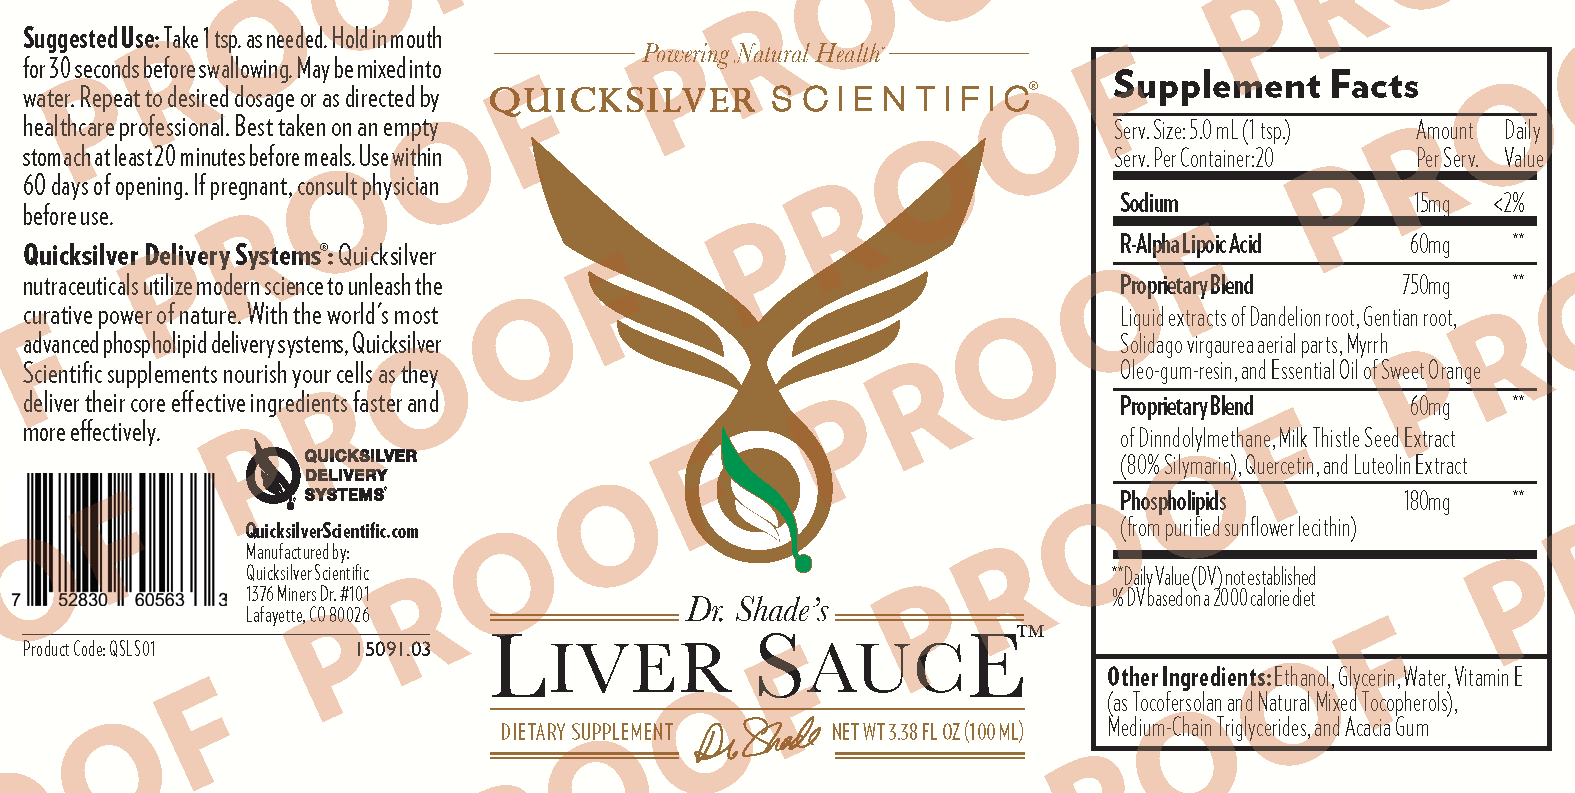 Liver Sauce 100ml Herbal Line 1509103 Ginkgo Extract 1oz/4oz